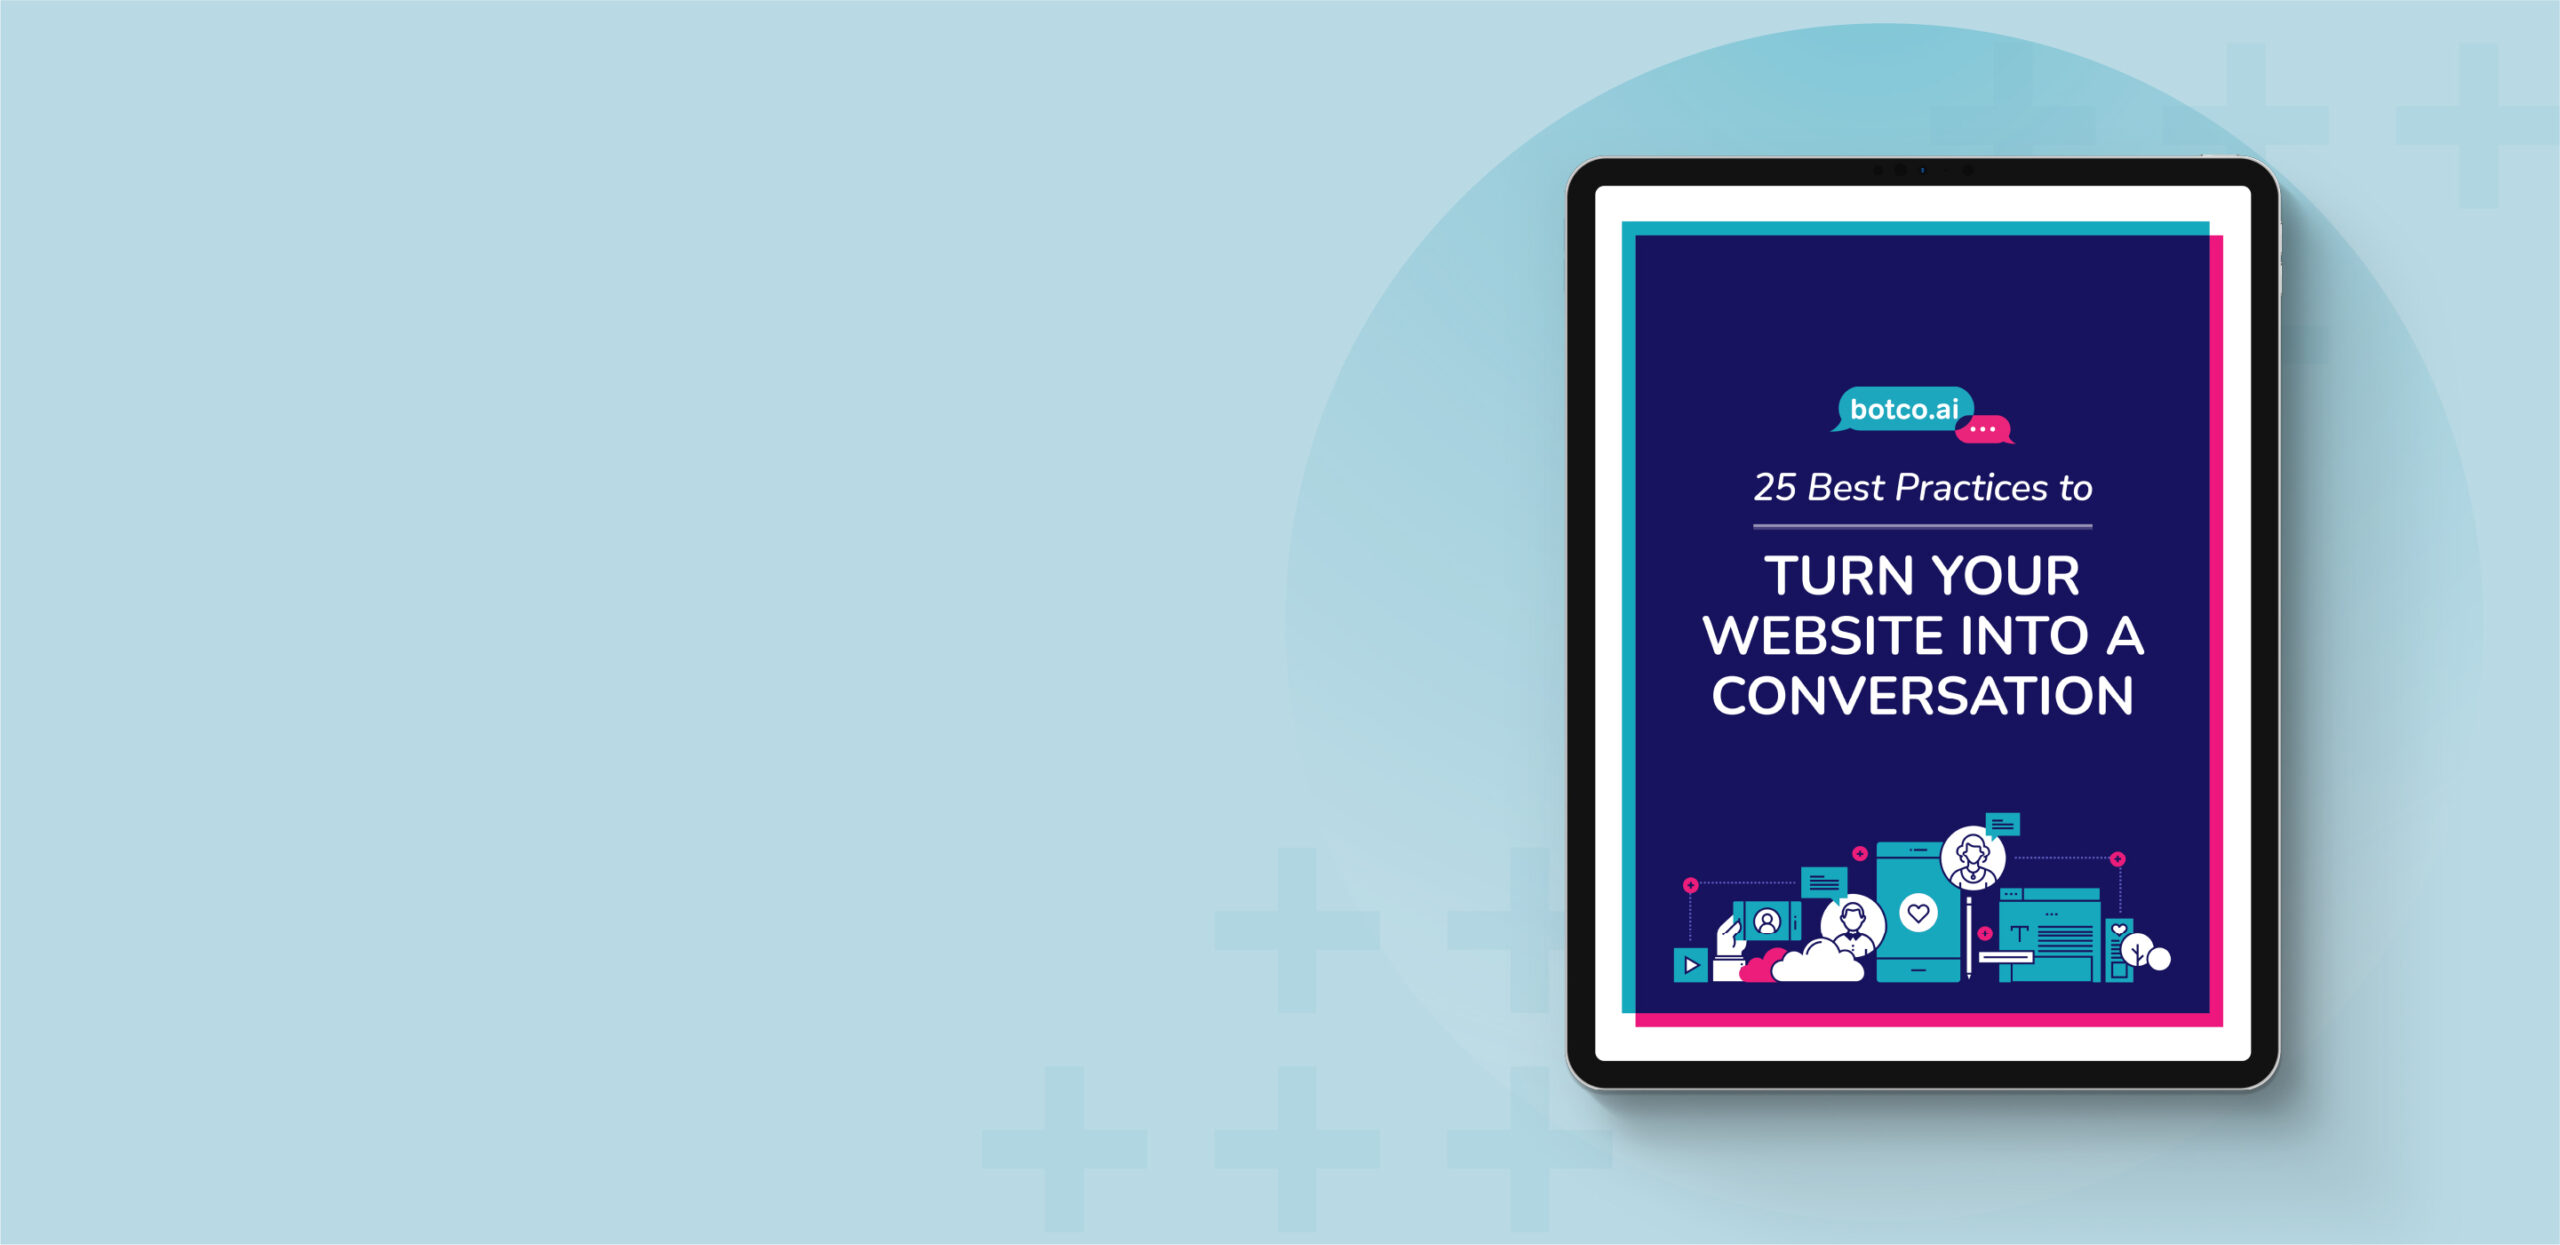 25 Best Practices eBook Cover on Blue Background